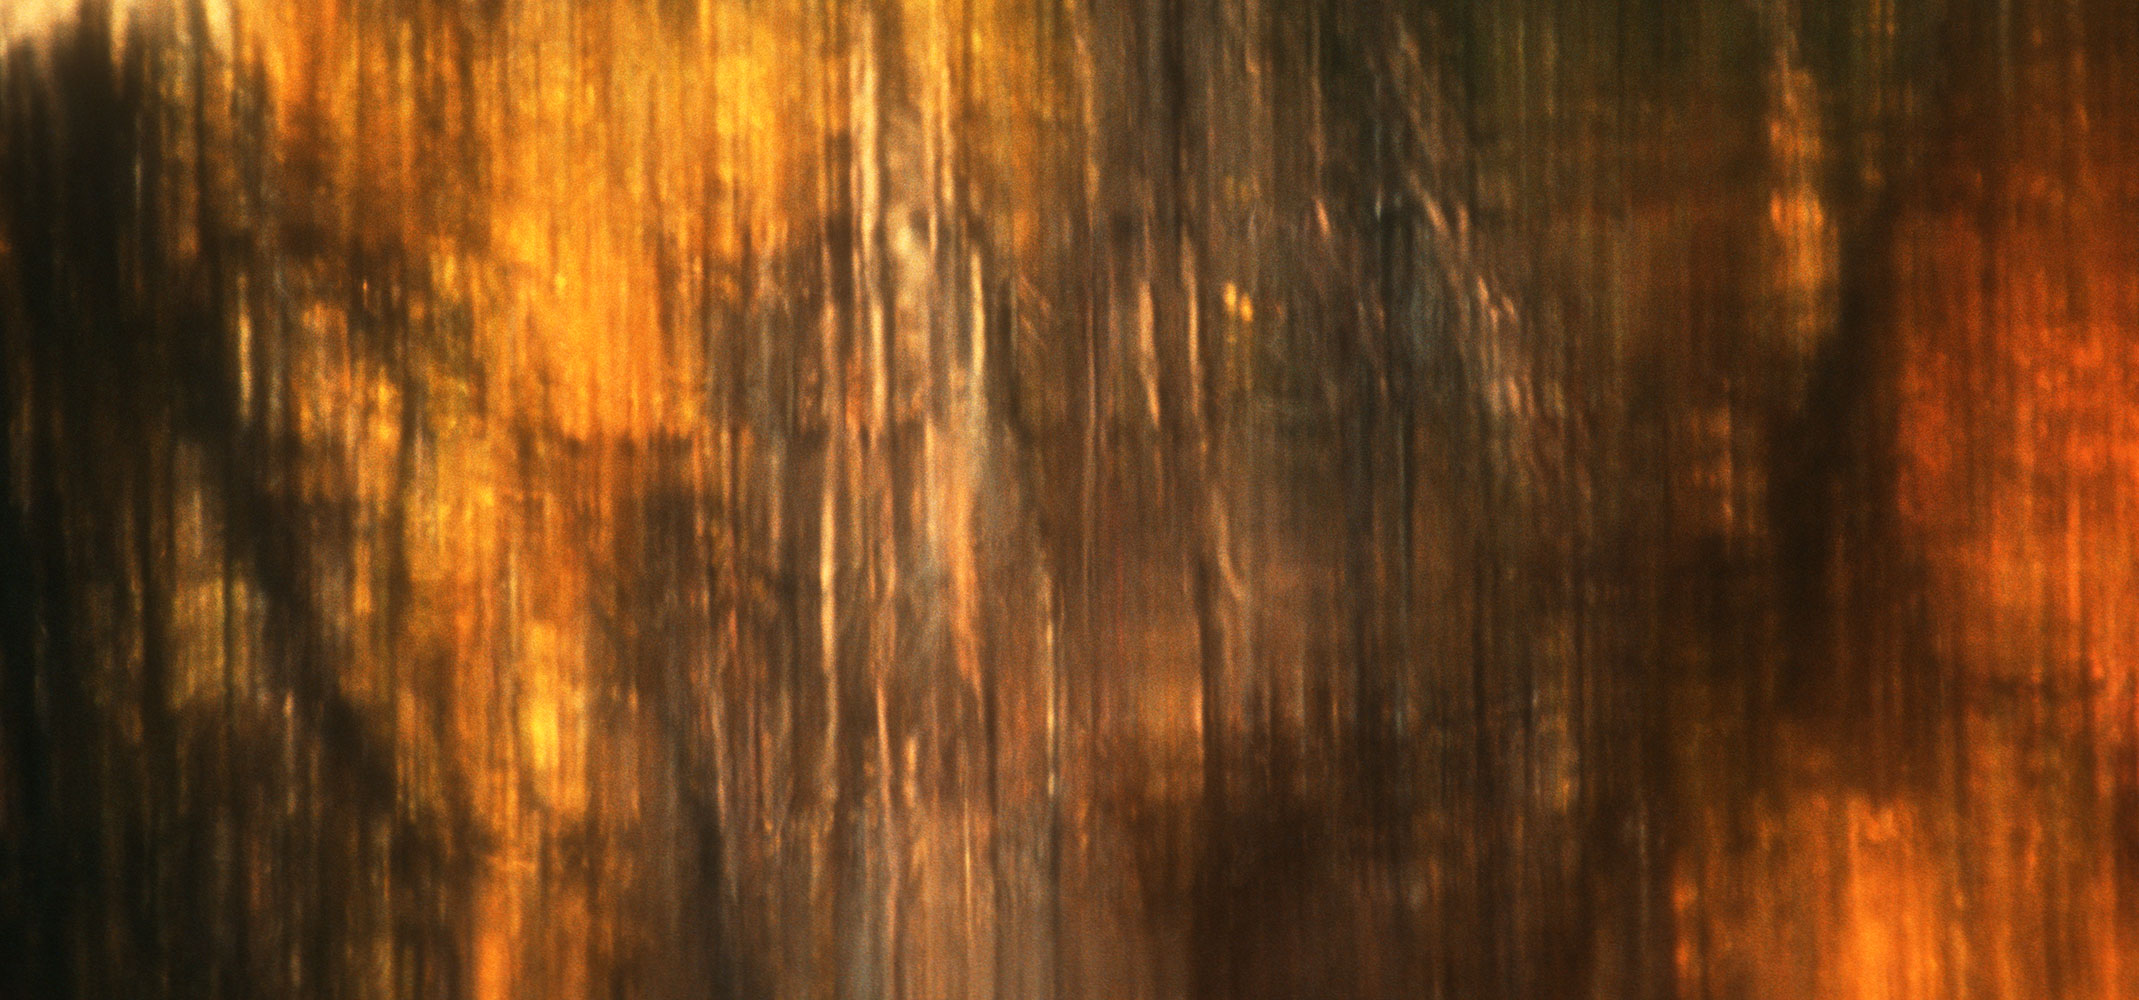 reflection   twilight   bronze   coppery   abstract